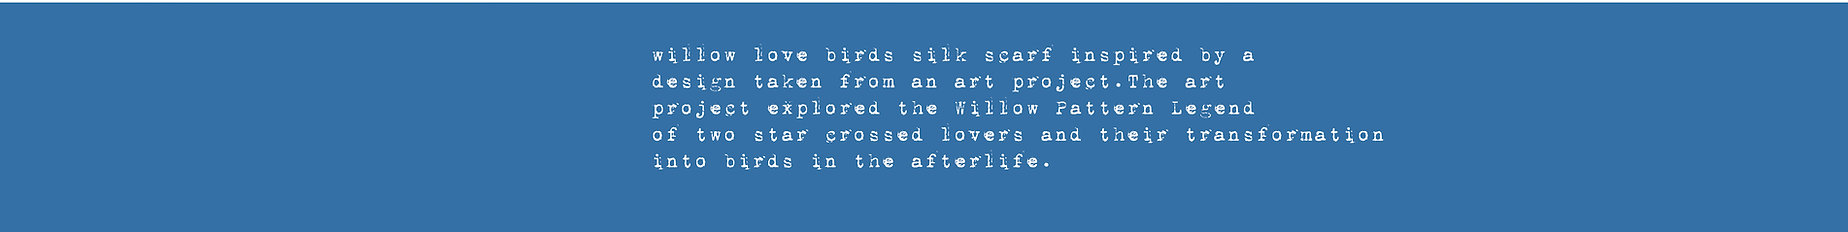 Willow love birds text copy.jpg